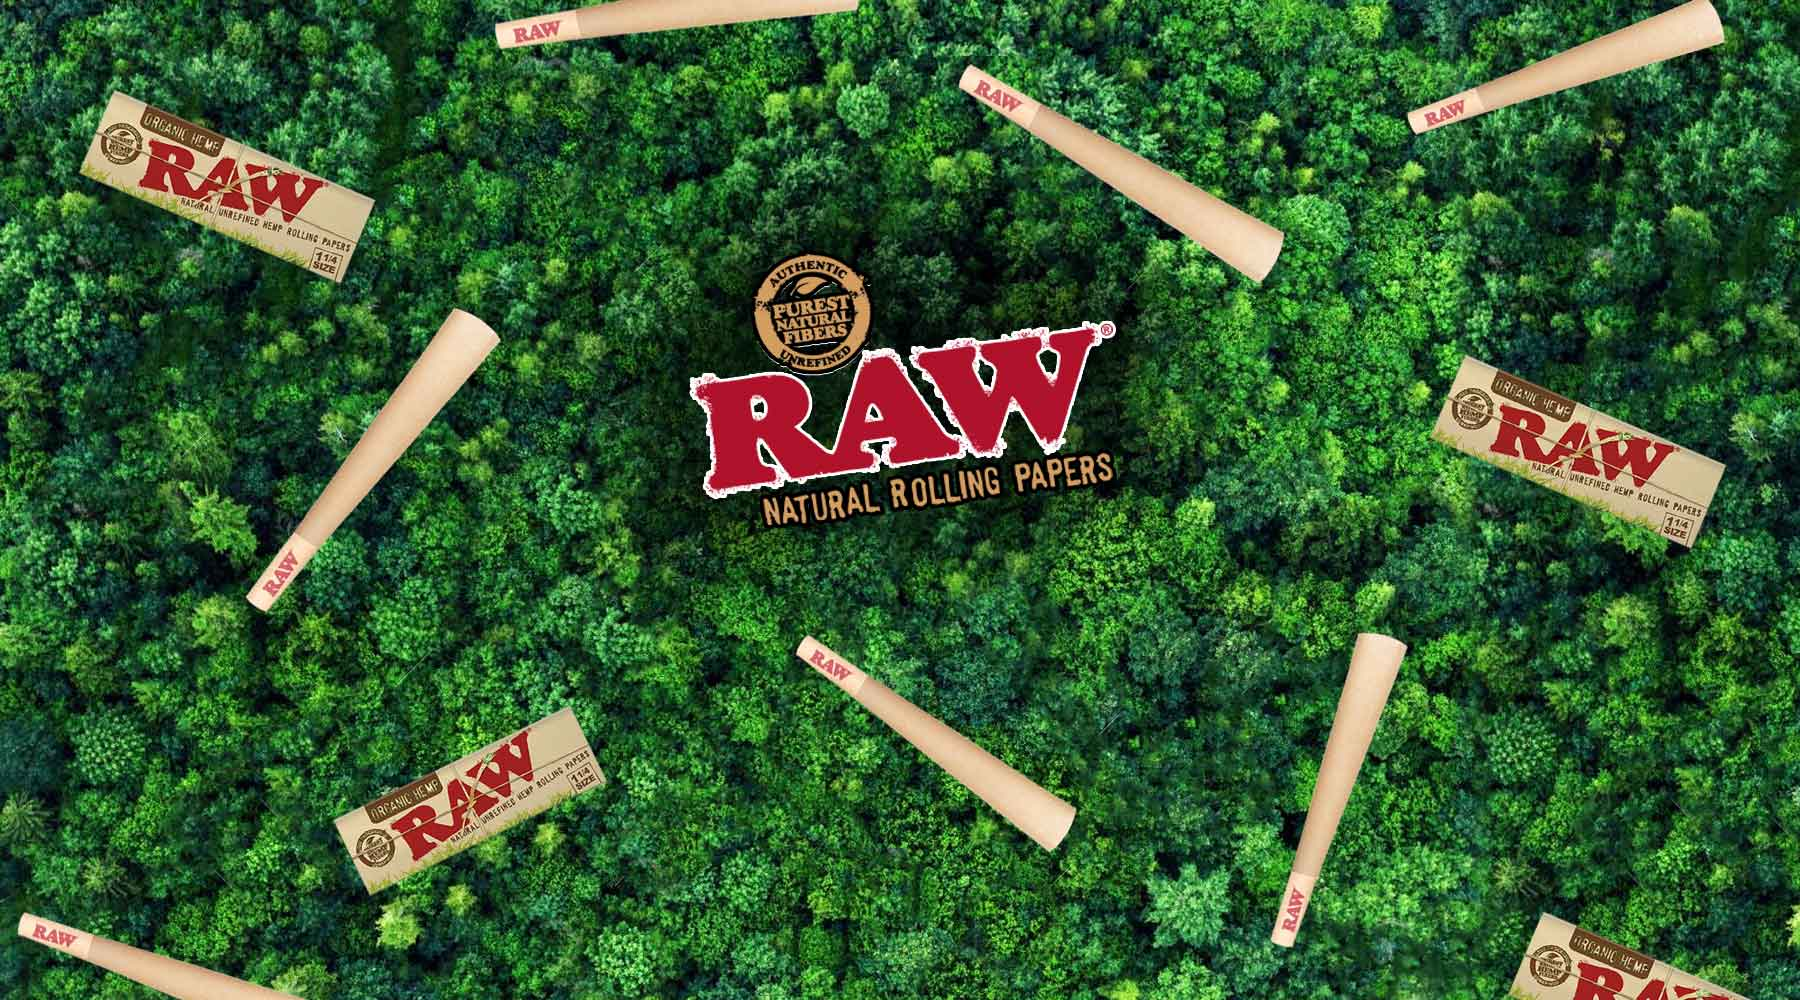 Offical Raw cones, papers, tips, pre  rolls, unbleached papers, apparel, shirts, rings and more for sale online